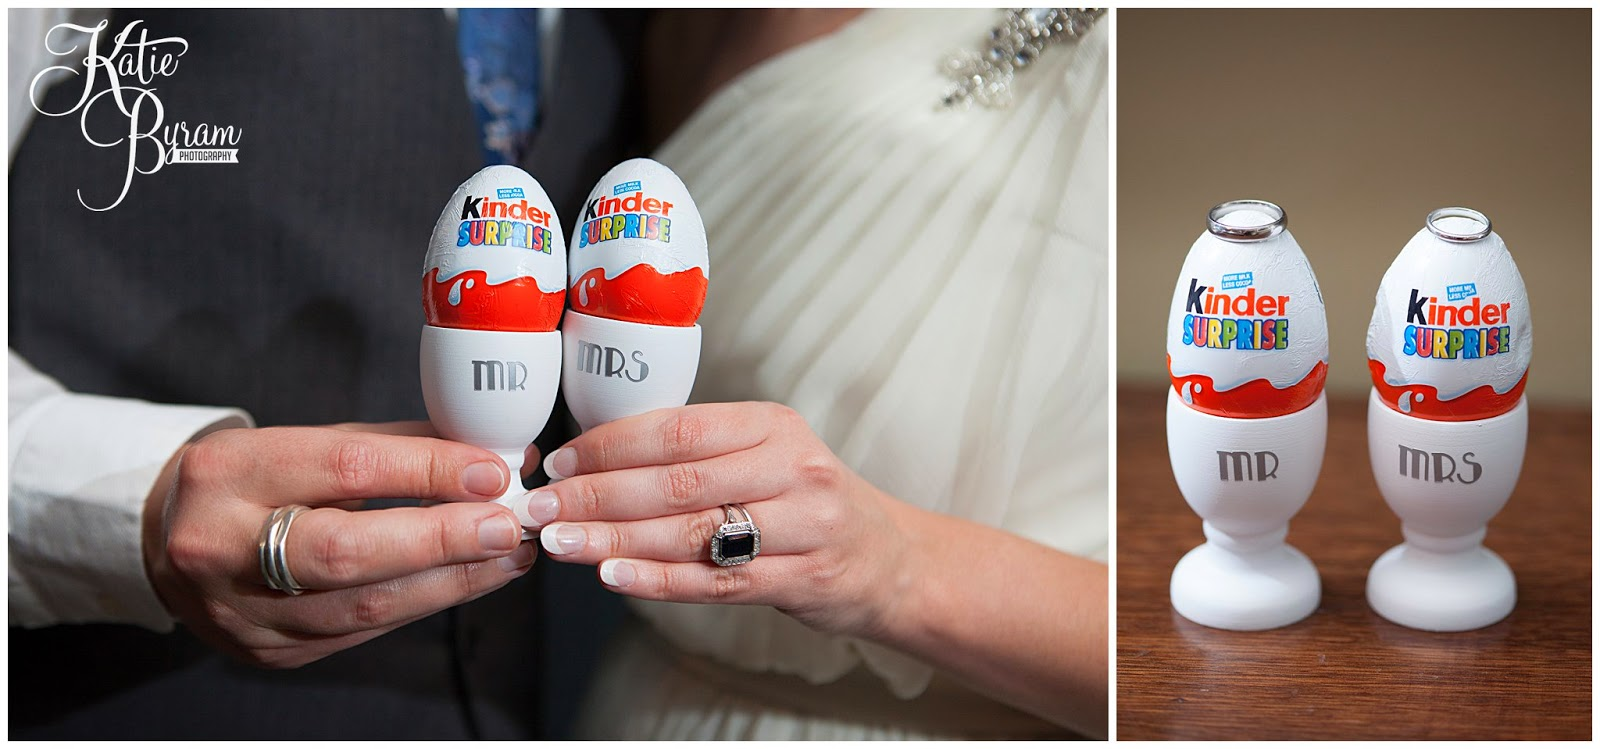 kinder egg wedding, kinder egg proposal, hotel du vin newcastle, hotel du vin wedding, hotel du vin wedding photographs, hotel du vin newcastle wedding photographs, vintage wedding, small wedding, katie byram photography, newcastle wedding venue, city wedding venue